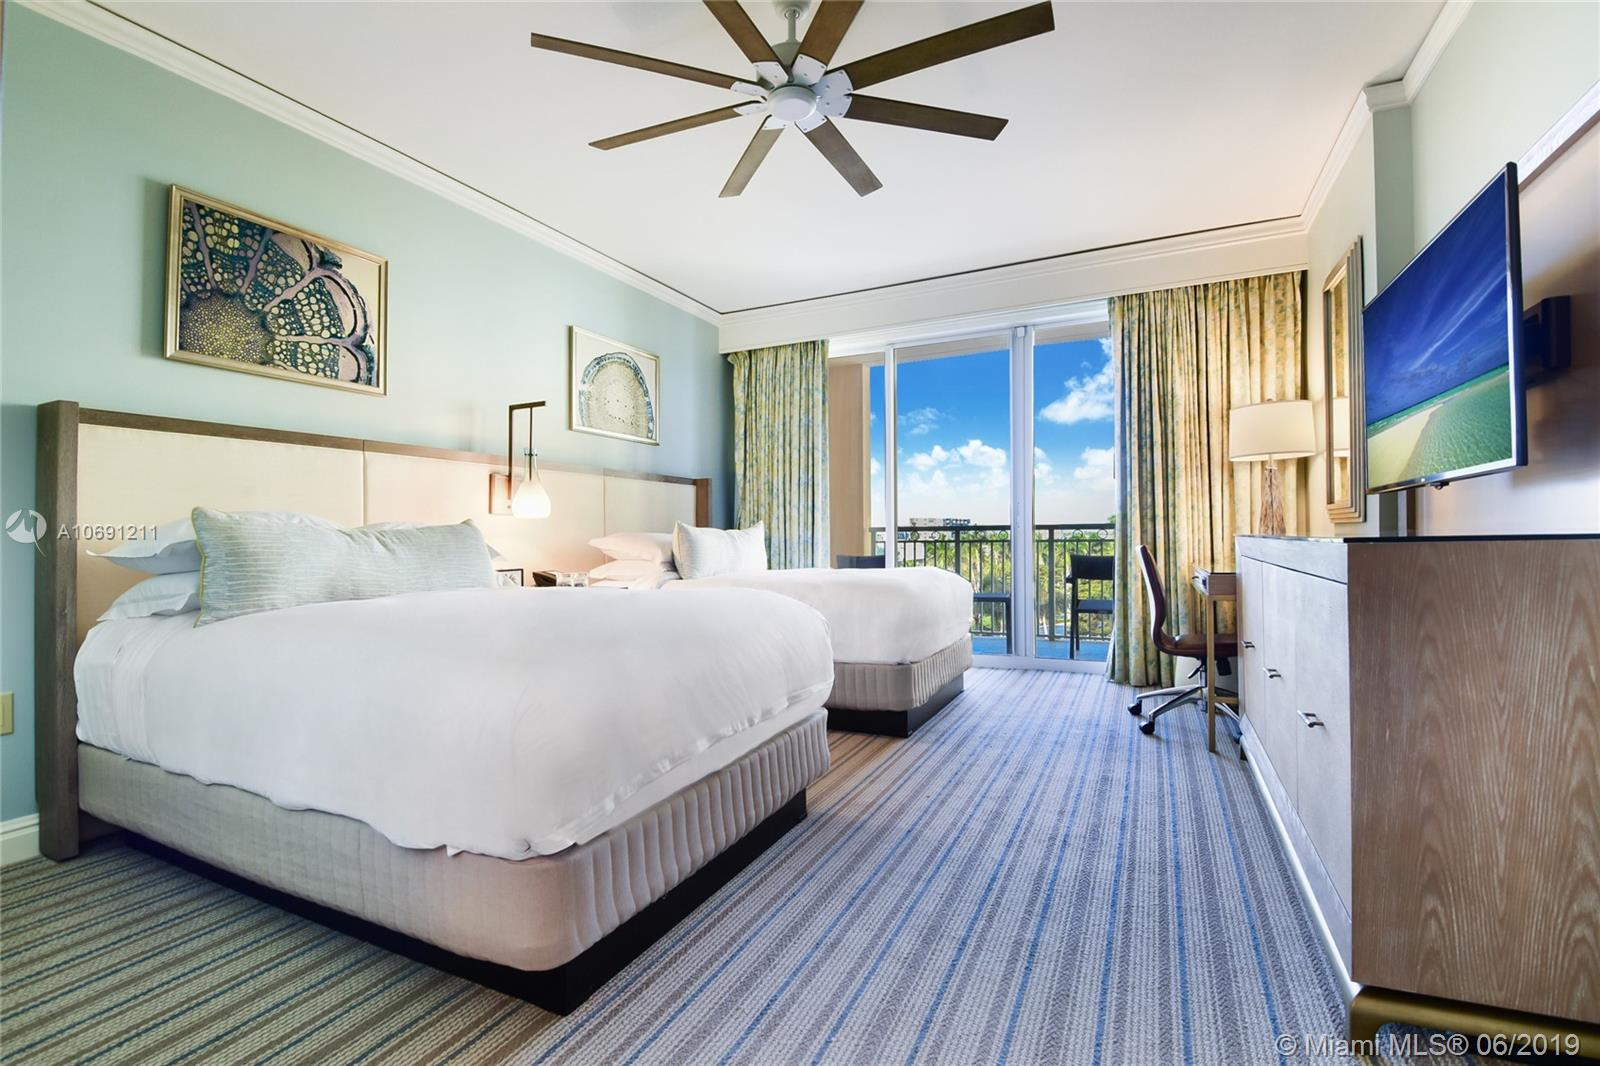 DAILY AND WEEKLY RENTALS!!! PRICES WILL VARY ACCORDING TO THE SEASONS. Apartment with gorgeous direct ocean view from the 10th floor at the luxurious Ritz Carlton 5-STAR Resort and Spa. Reserving this apartment will guarantee you a 5star treatment. You will be treated as a regular guest and have access to all amenities. Luxurious spa & fitness center, 2 oceanfront pools, restaurants, tennis courts, private beach, kids room. 1 PRIVATE PARKING SPACE COMES WITH THE UNIT! 1 king bed, 1 queen pull out sofa-bed with memory foam mattress, 1 bath, kitchenette, TV, balcony. We have 5 units in the hotel, give our office a call for availability! January:$280February:$280March:$305April:$305May:$198June:$270July:$270August:$280September:$148October:$162November:$288December:$378